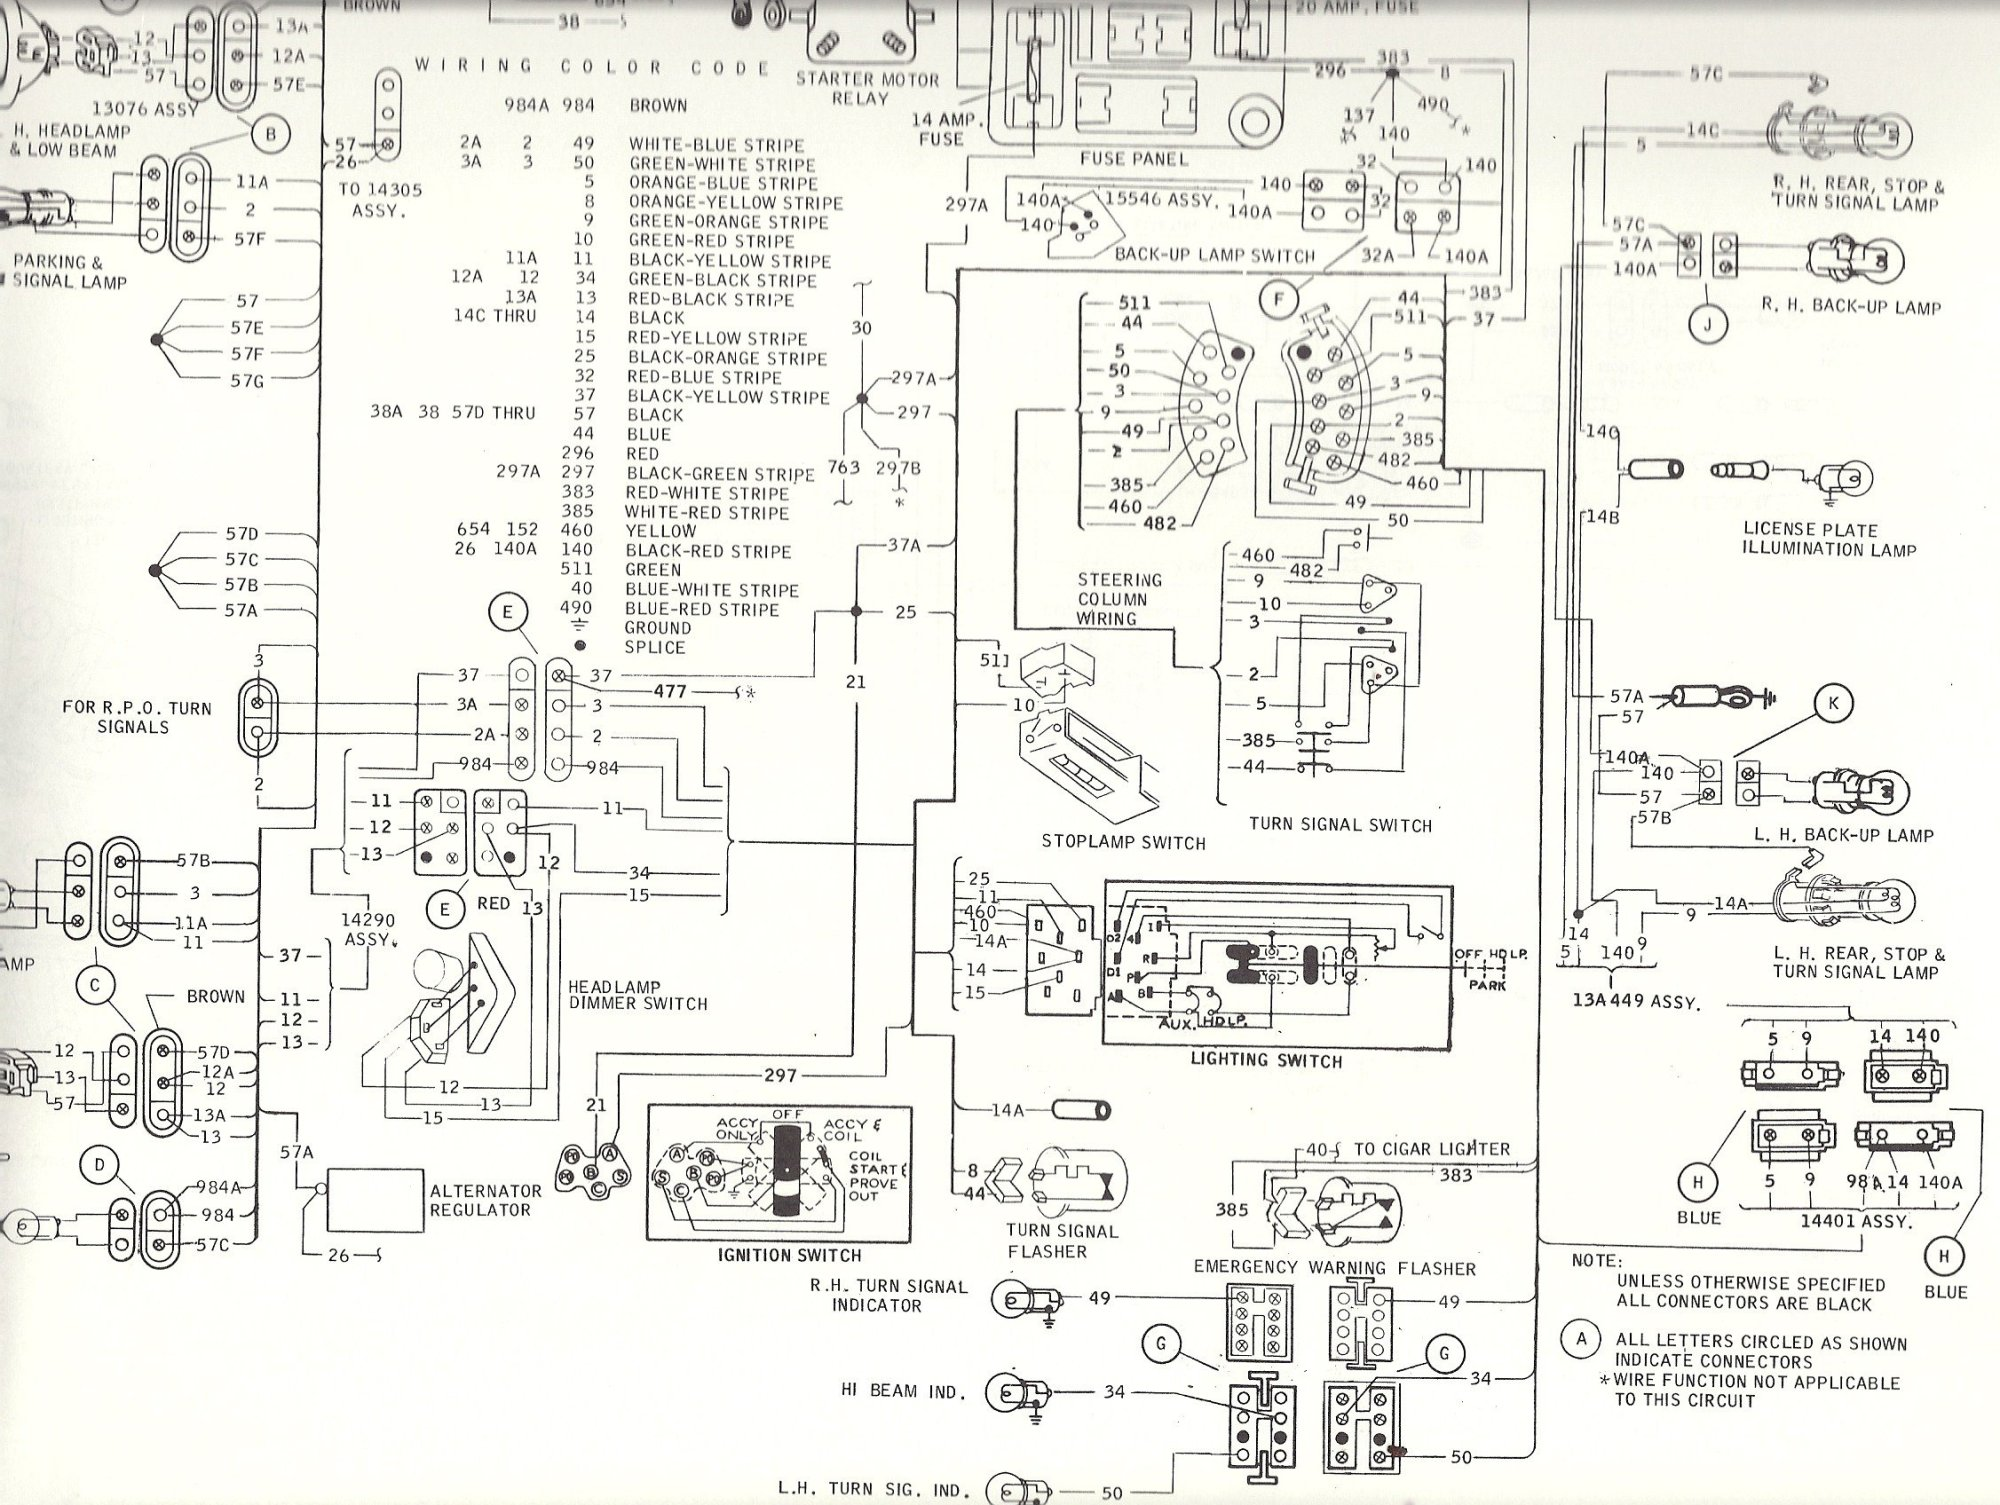 hight resolution of 1969 ford mustang wiring schematic and vacuum diagrams wiring 1968 mustang wiring harness diagram 1968 mustang wire diagram